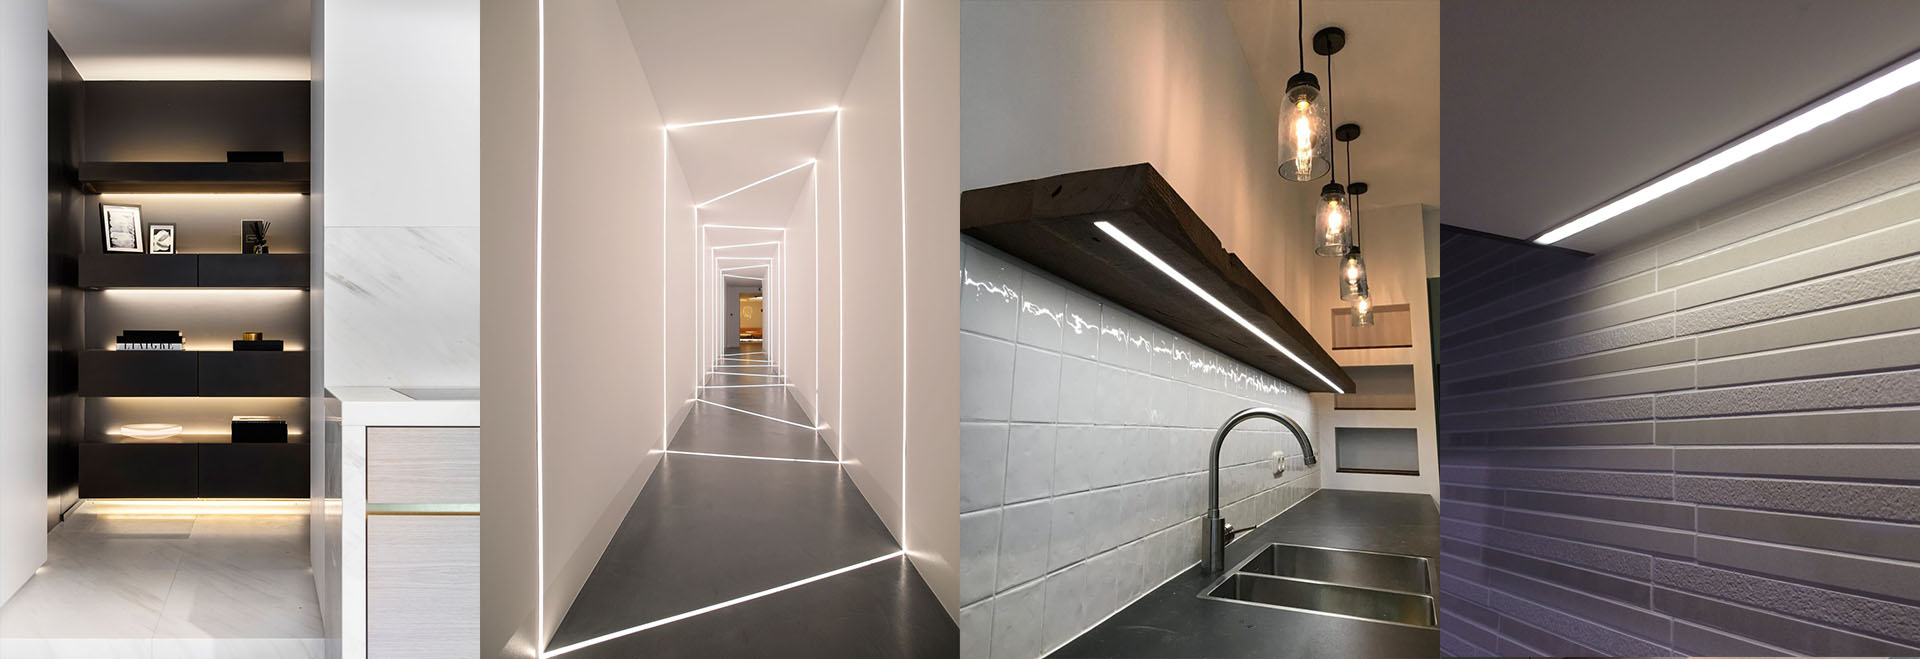 Application of strip light profile